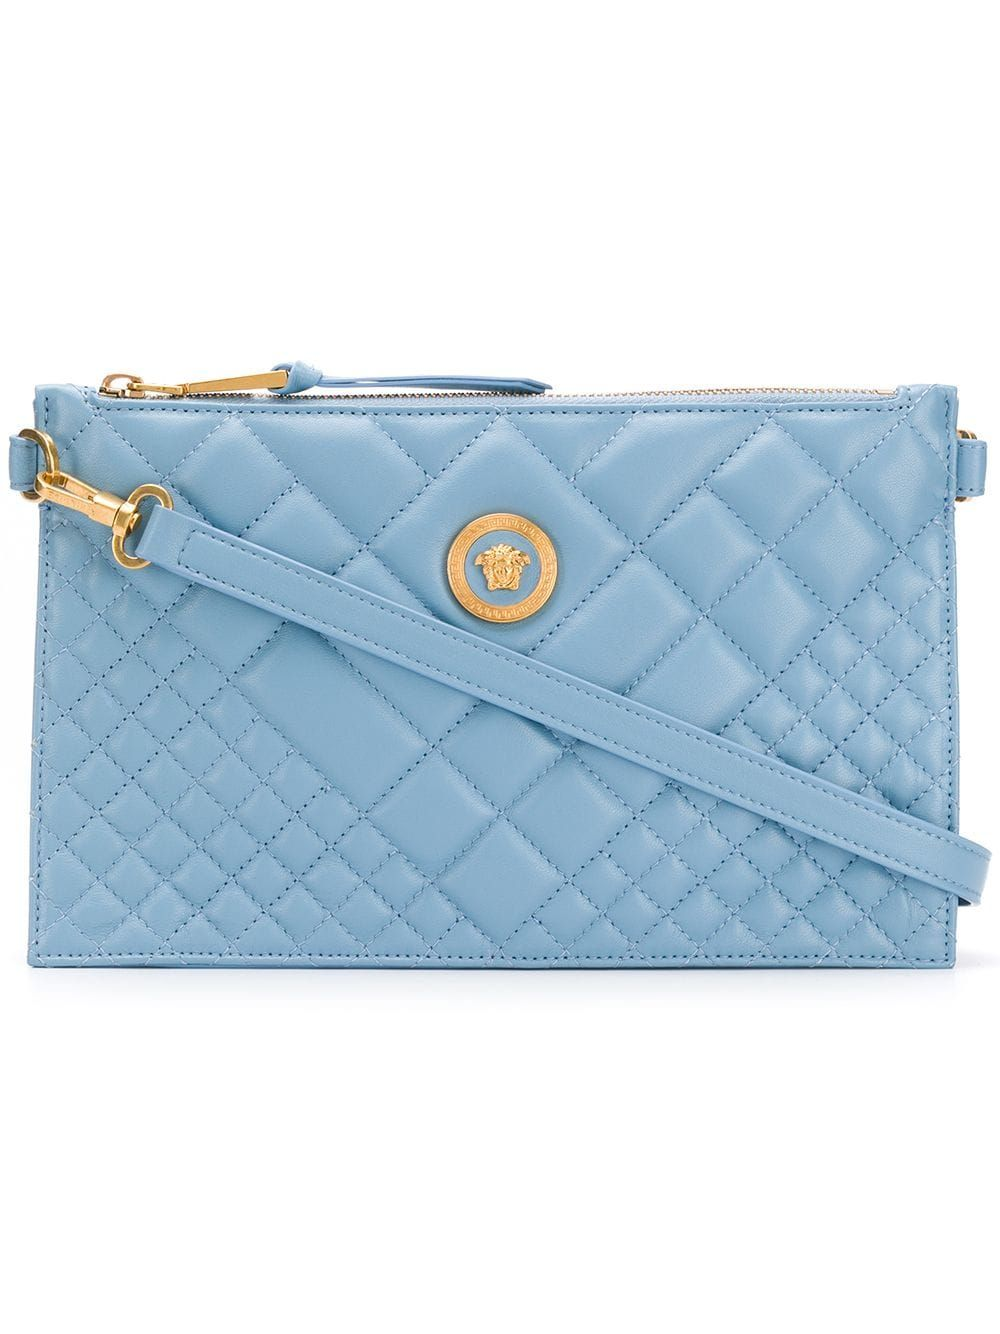 8dc3f062a1 Versace quilted Medusa clutch bag - Blue | Products in 2019 ...